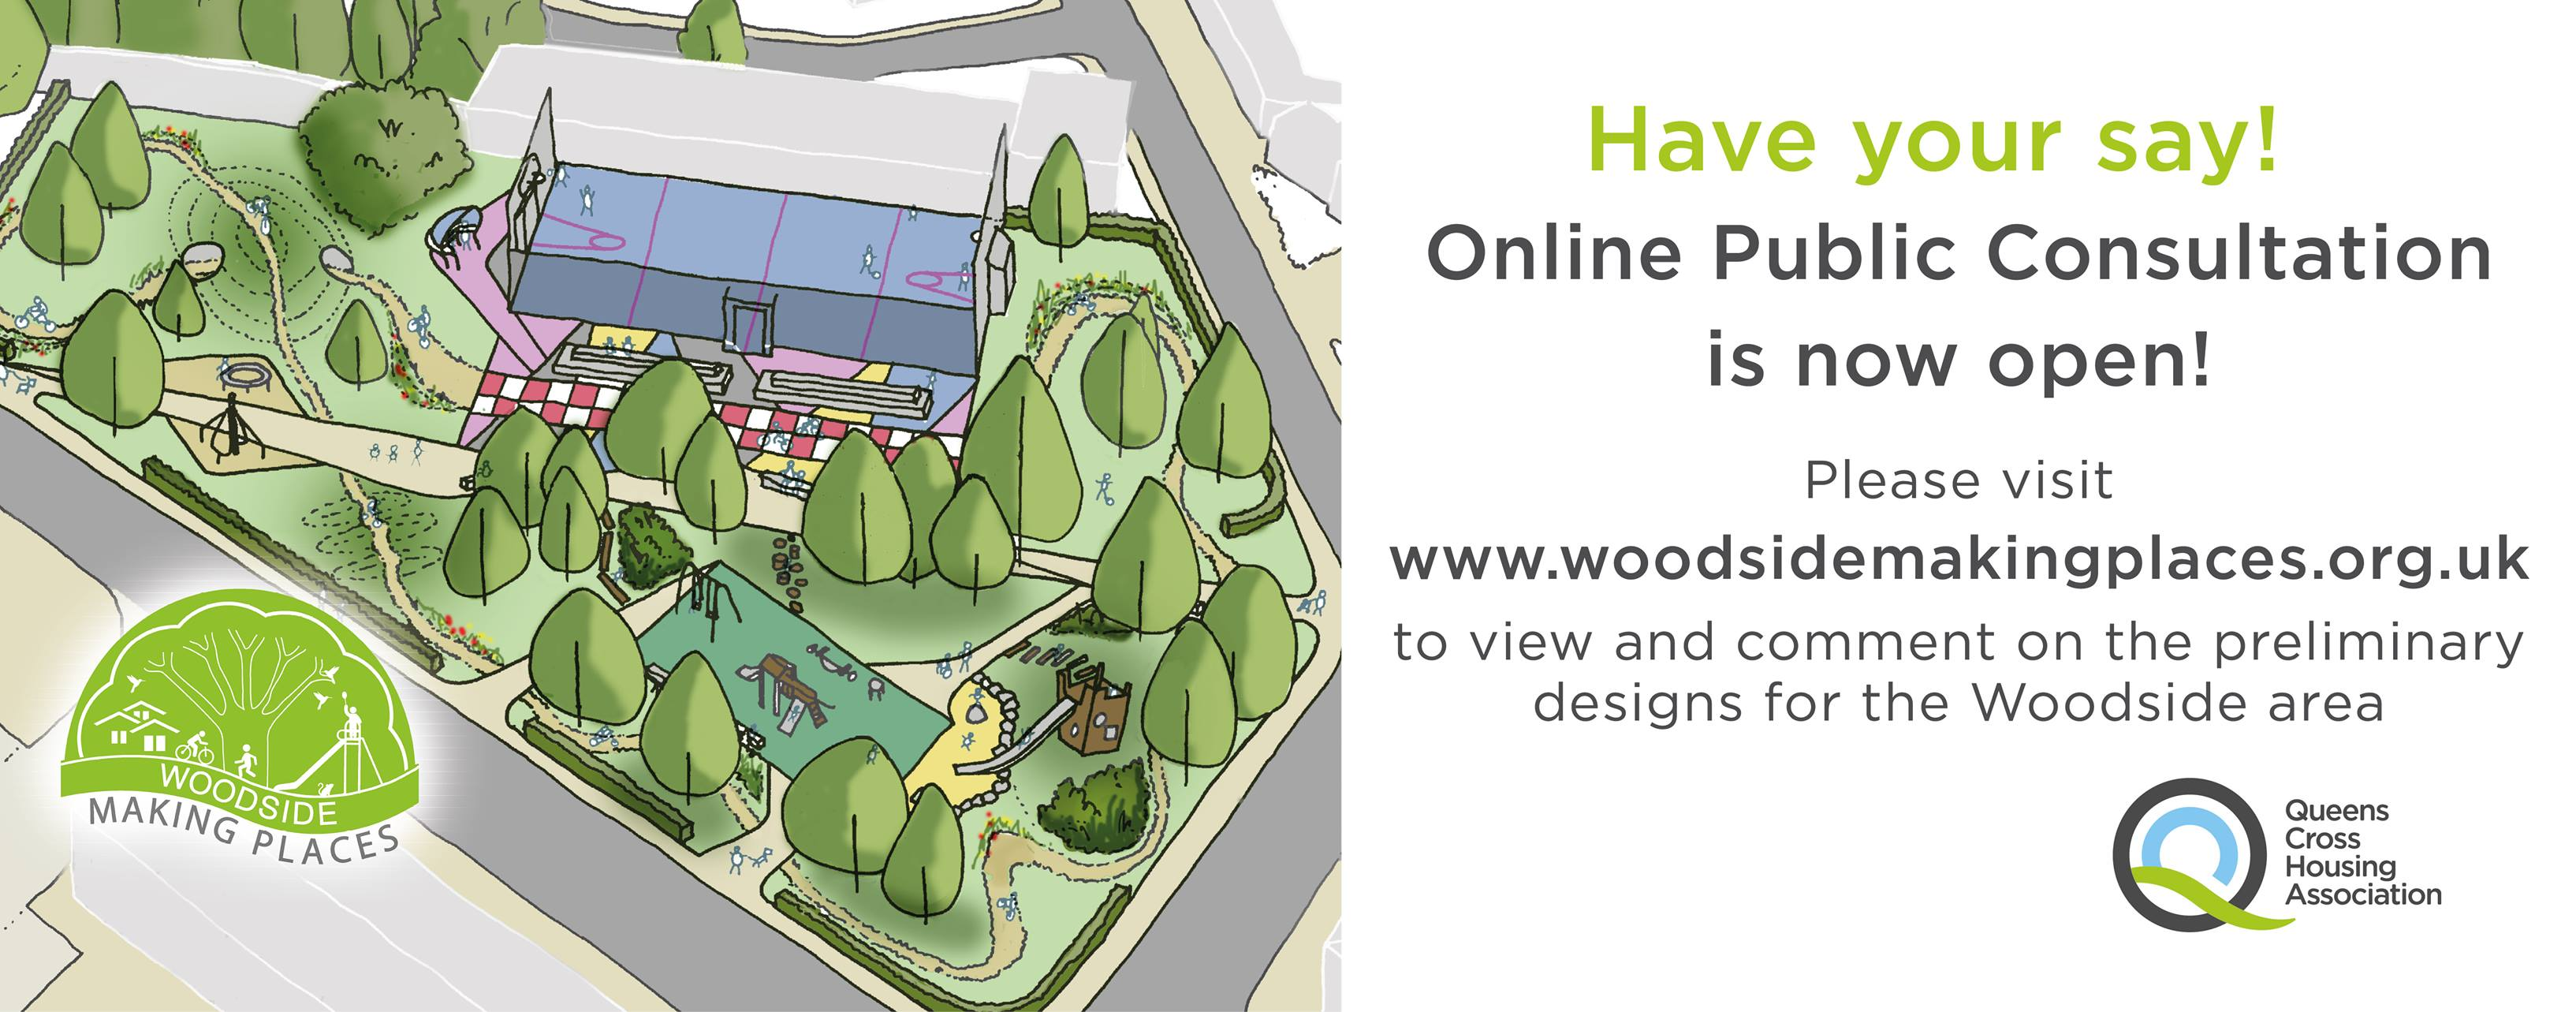 Woodside Making Places